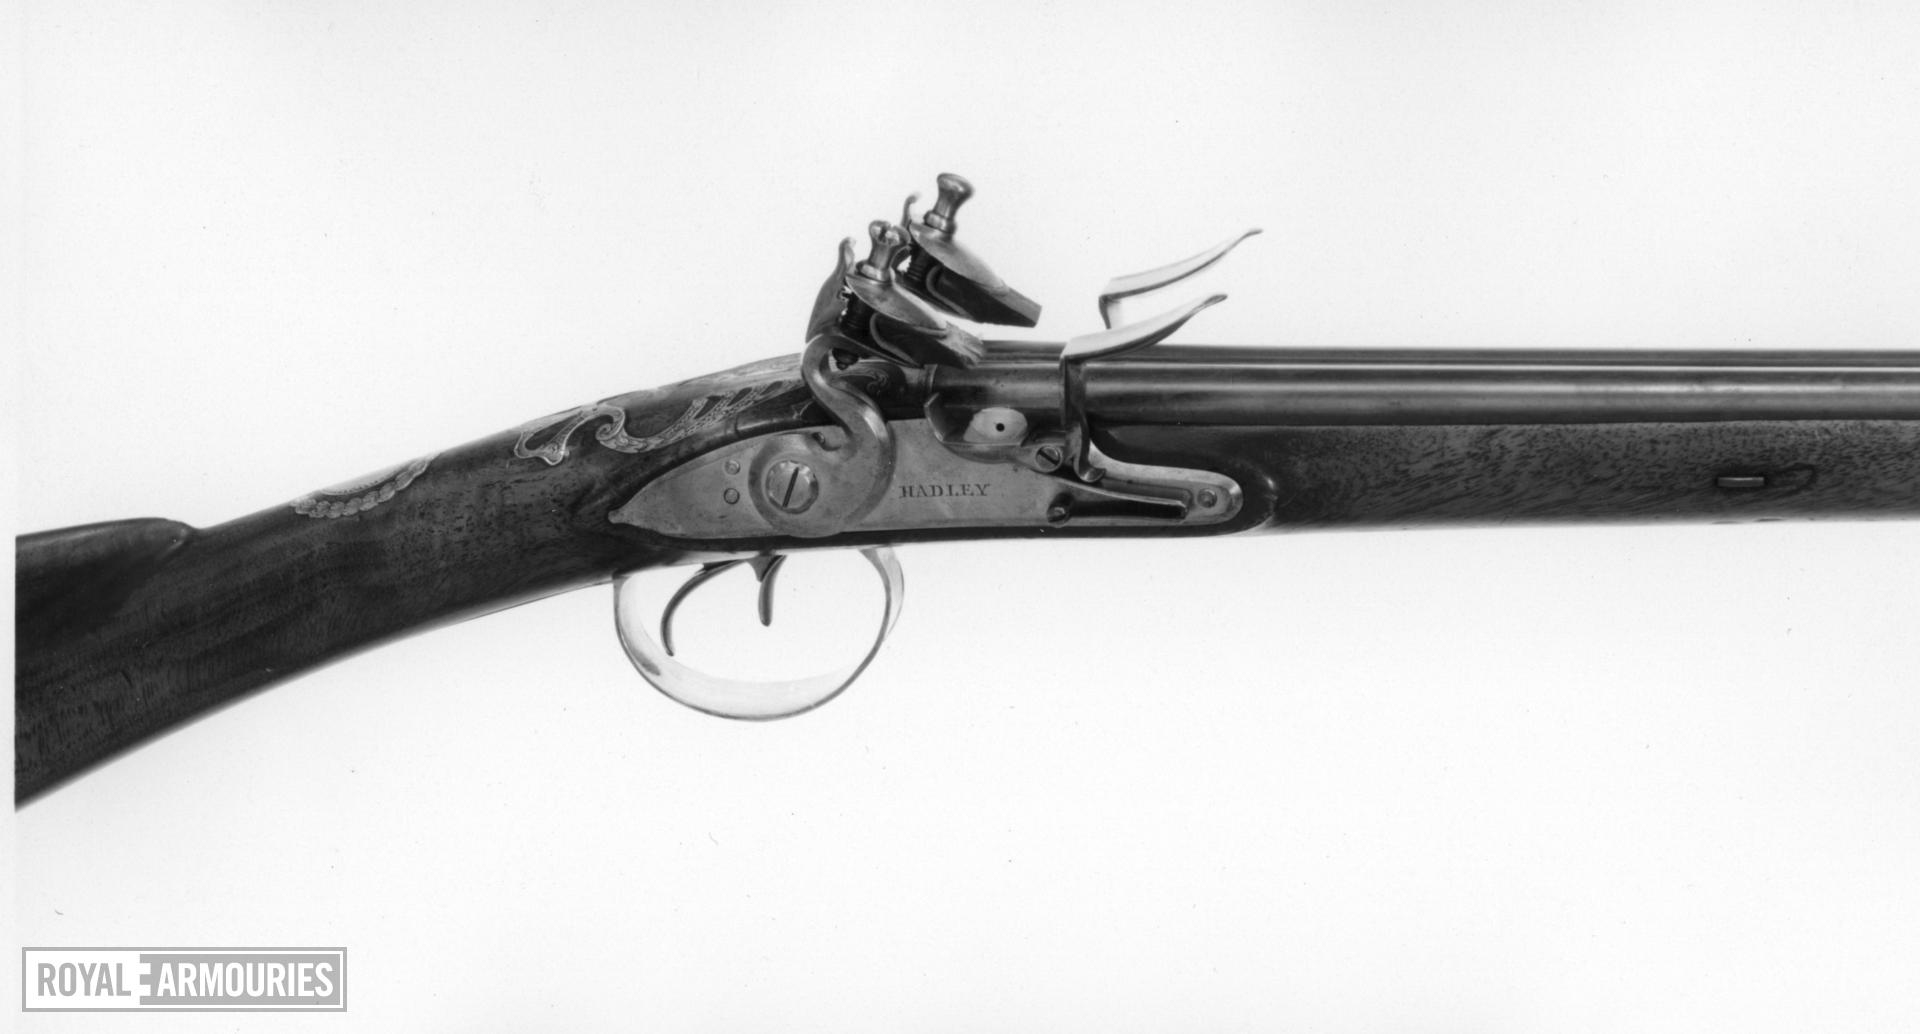 Flintlock double-barrelled shotgun - By Hadley Double side-by-side barrels with hook breeches, the blued finish partly restored.